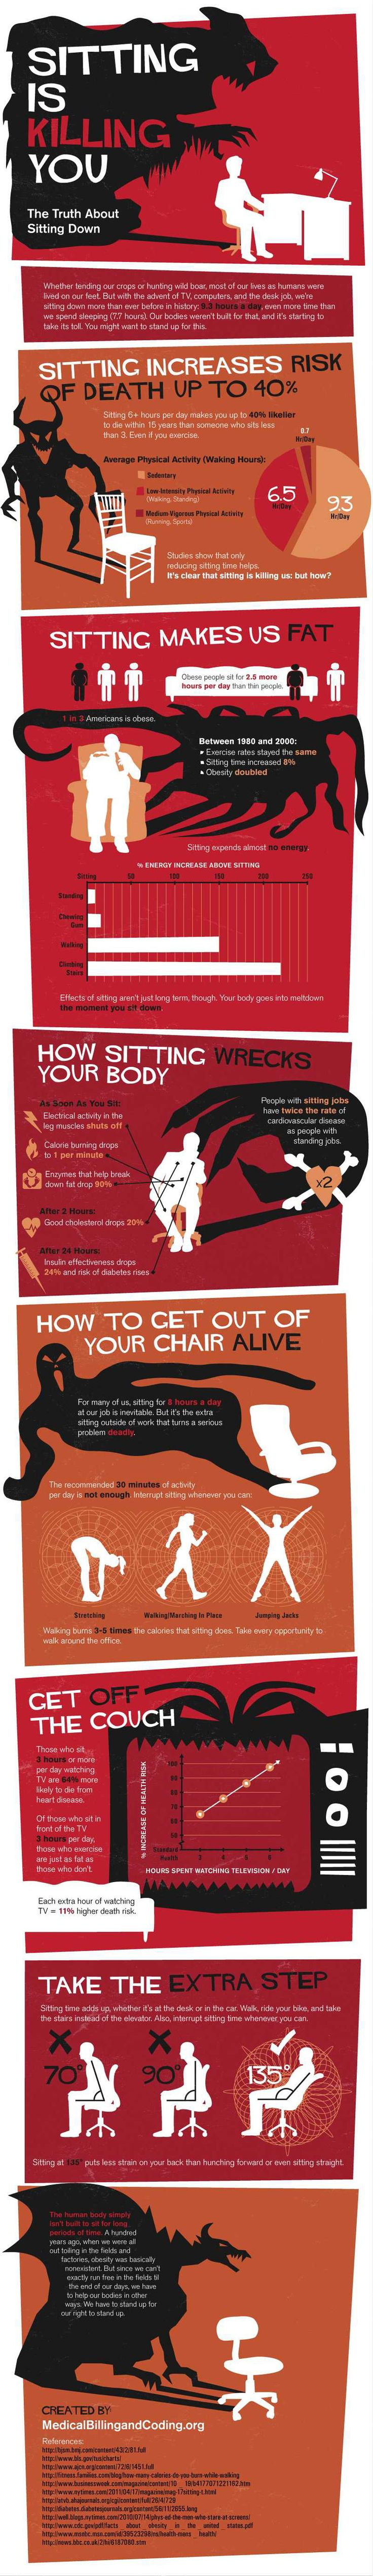 Whoa! This infographic makes sitting (too much) look scary! Better get up now and exercise!